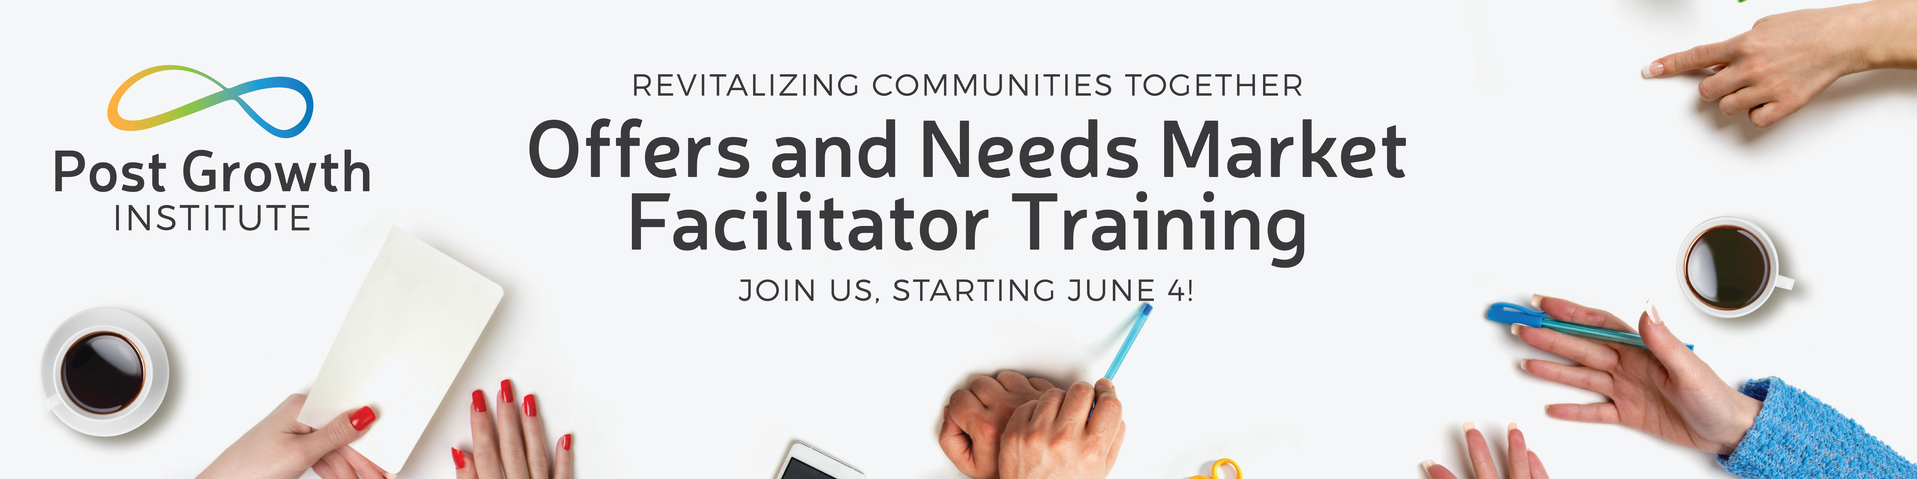 Image of a workbench with hands surrounding, overlain with text announcing details of the Offers and Needs Market Facilitator Training, starting June 4th.